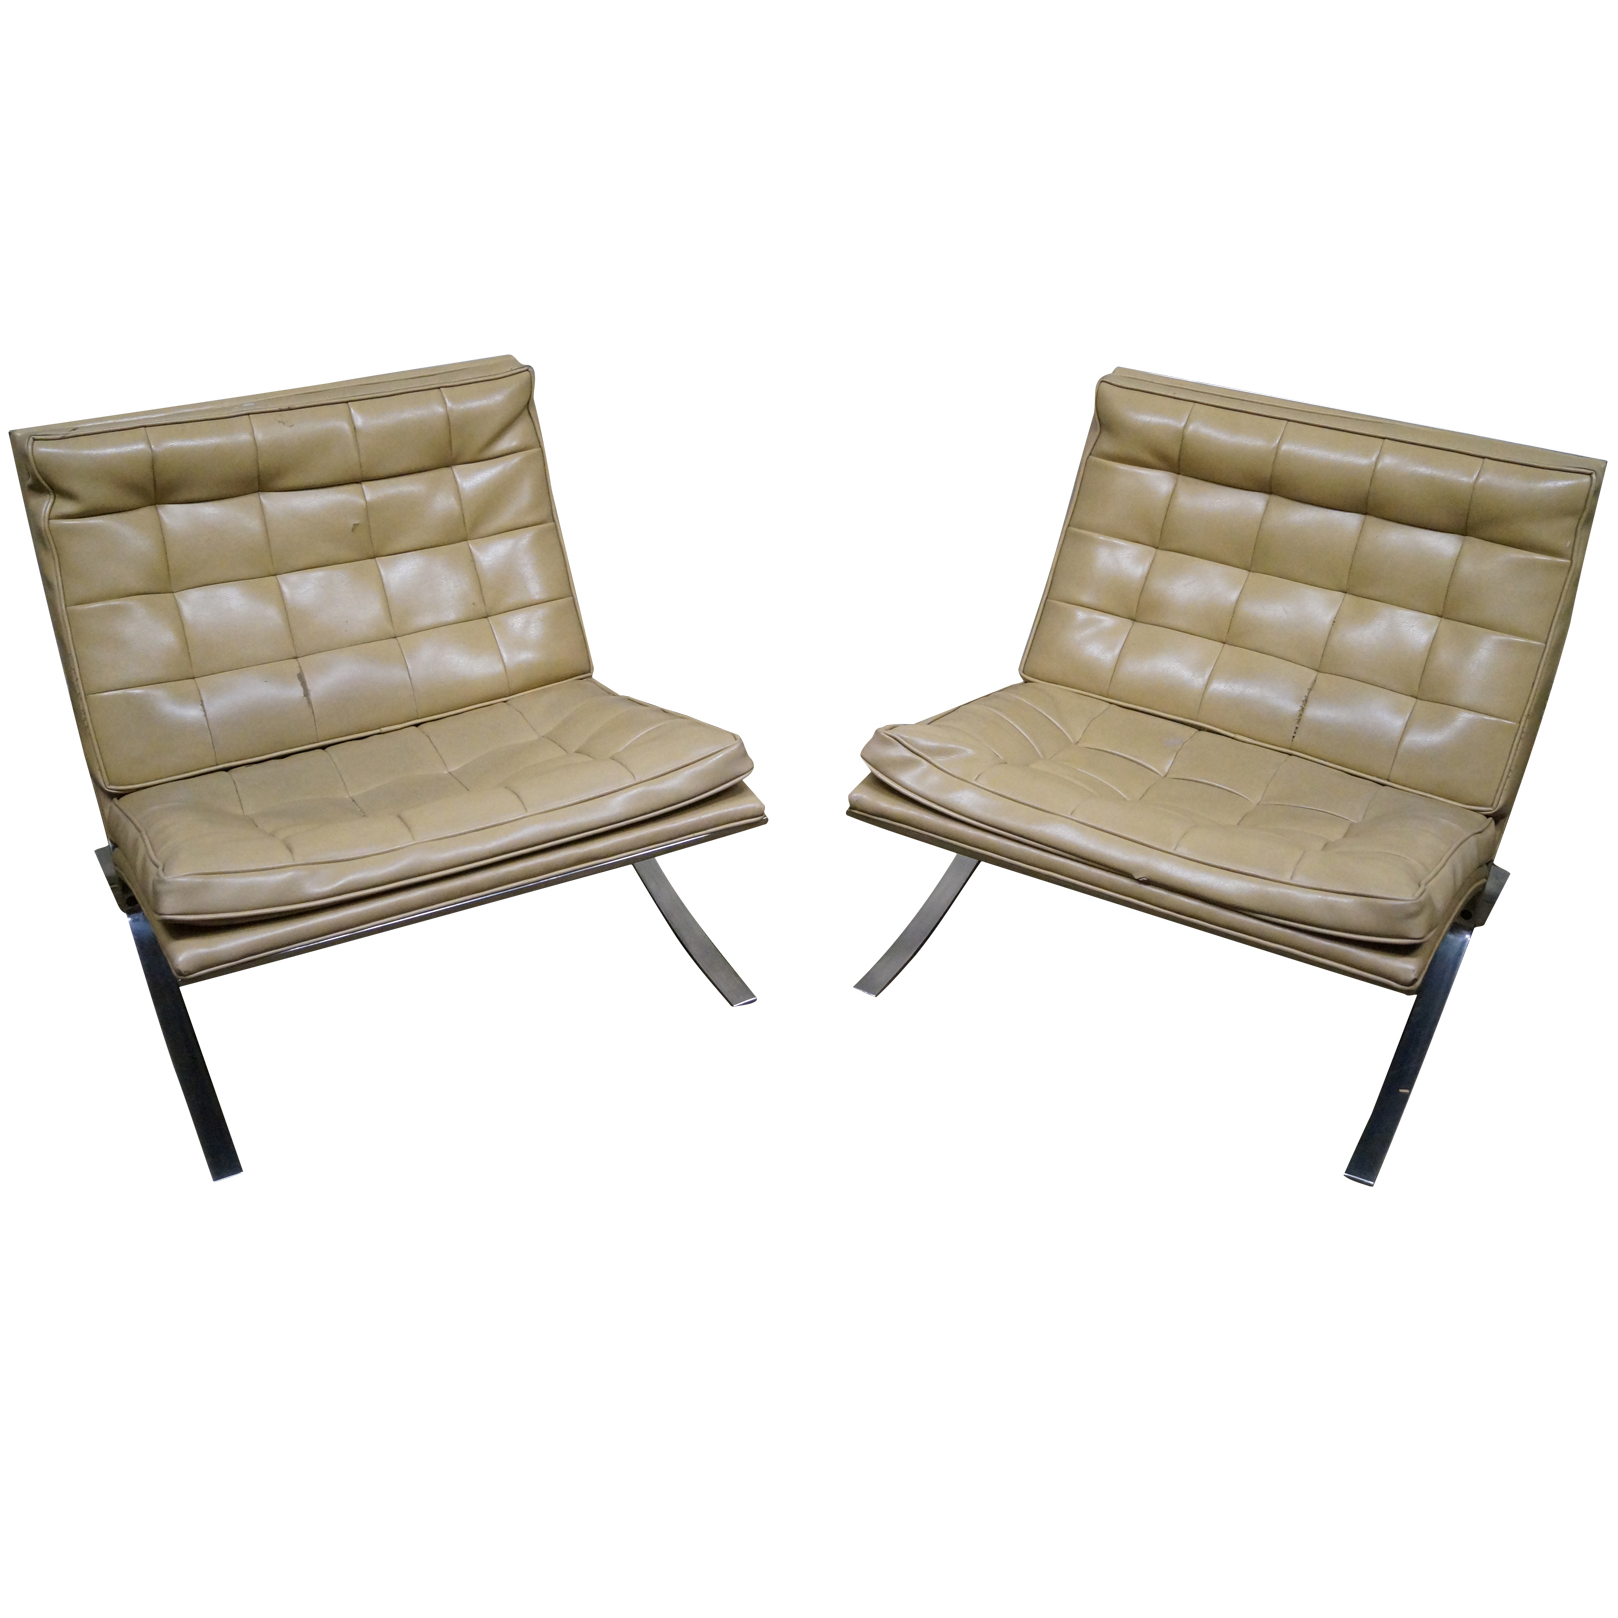 Barcelona style chairs - Image Of Vintage Chrome Frame Barcelona Style Chairs Pair